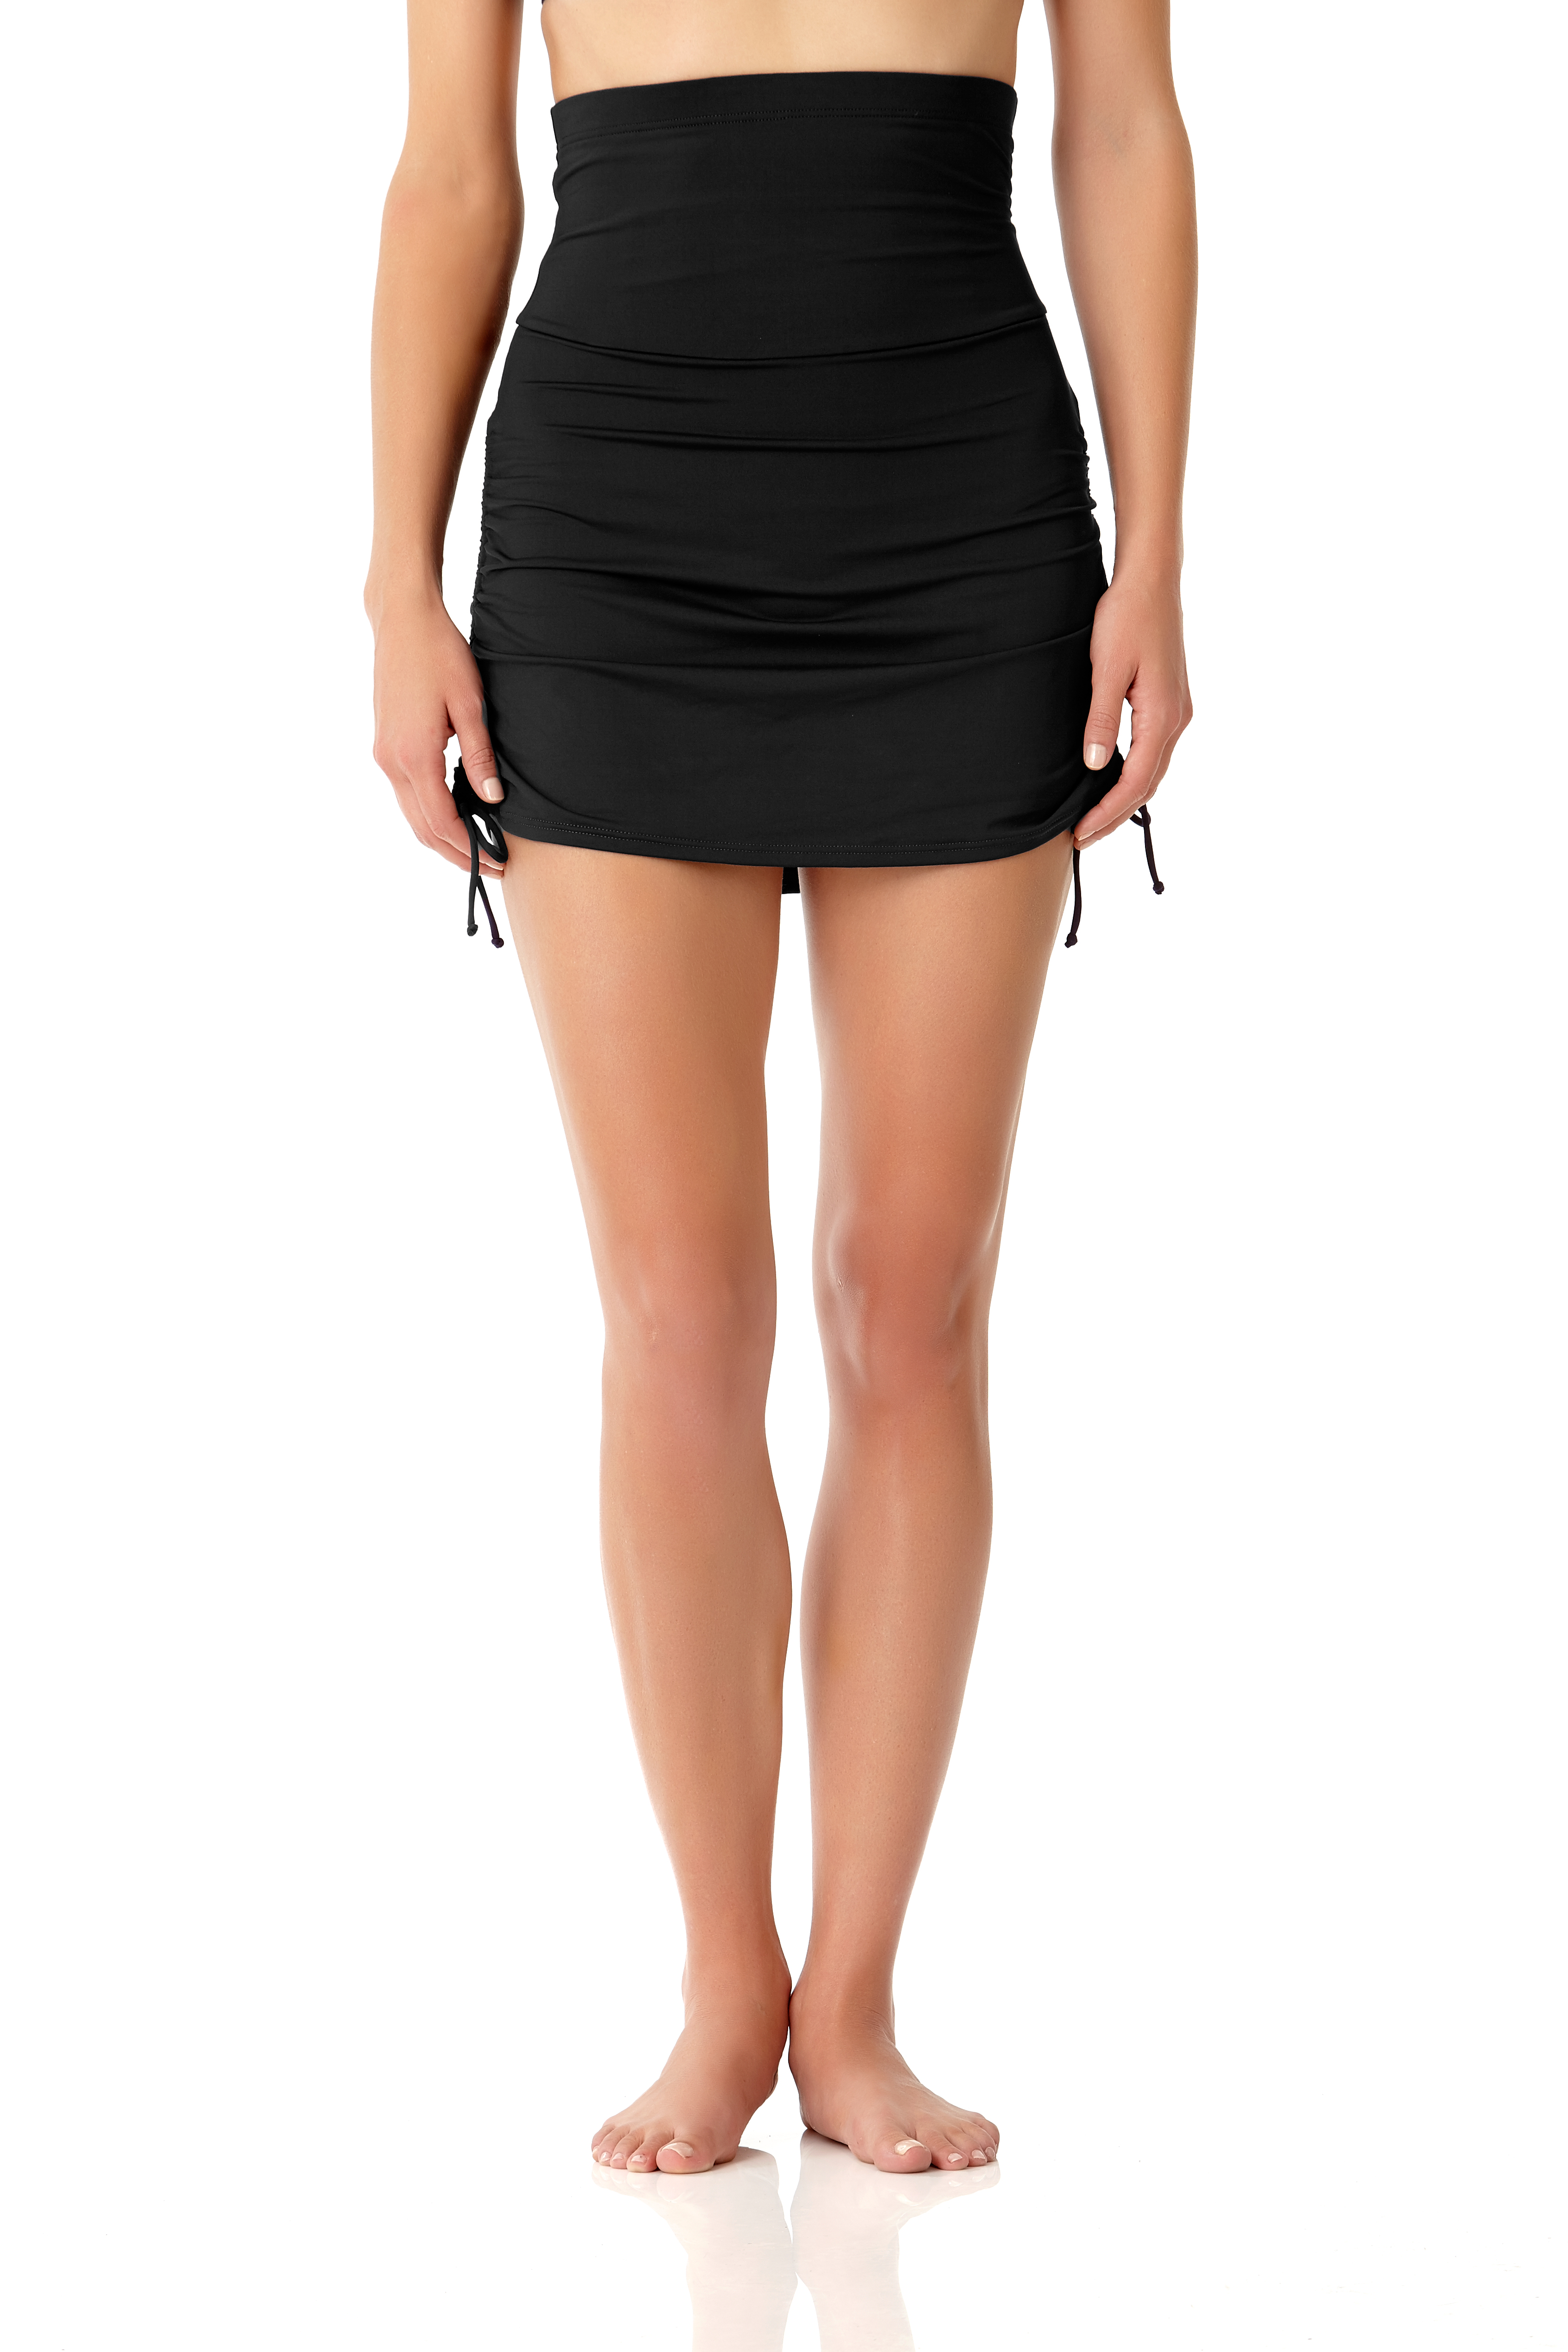 Anne Cole® Live in Color Tummy Control Swimsuit Skirt Bottom -Black - Front